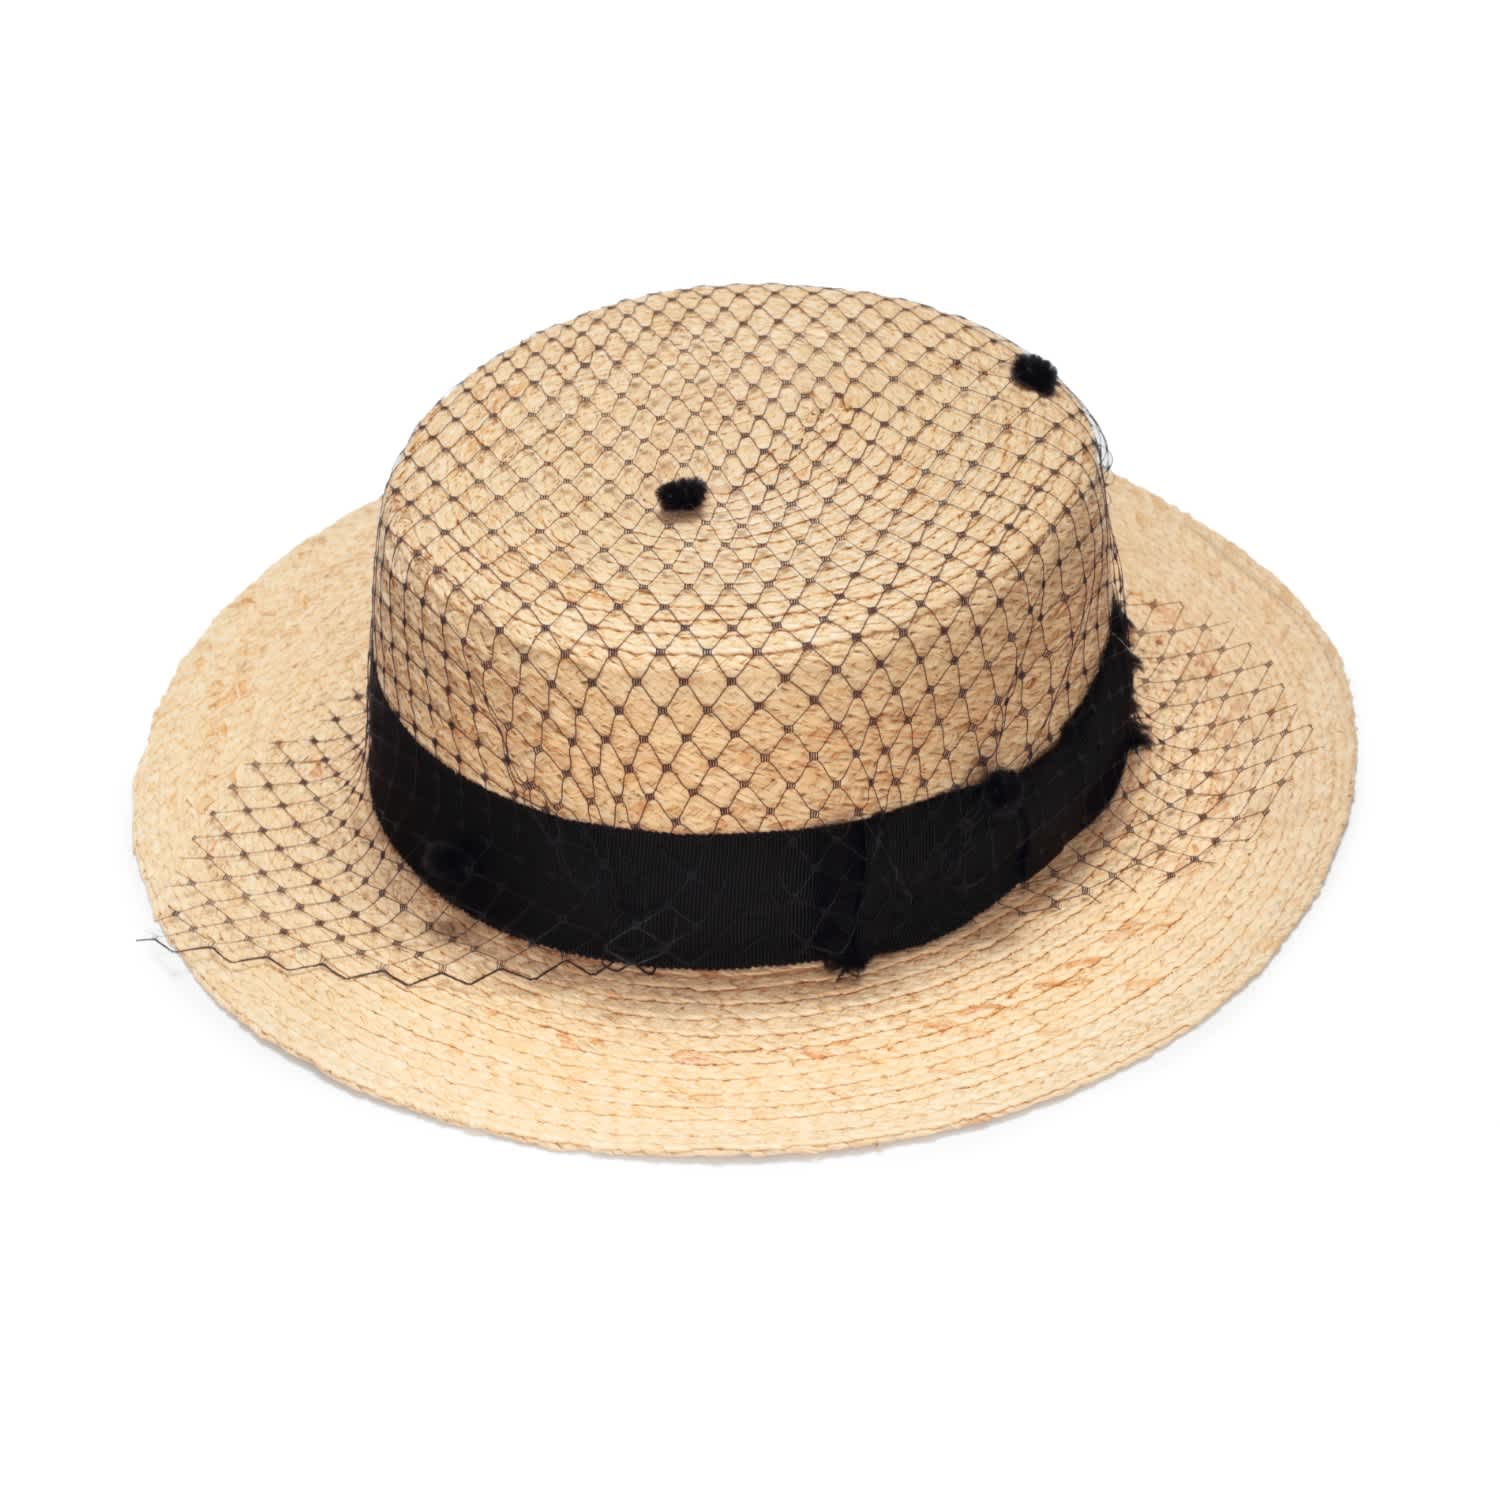 5bb6b6b643d7e Straw Boater Hat With Veil image